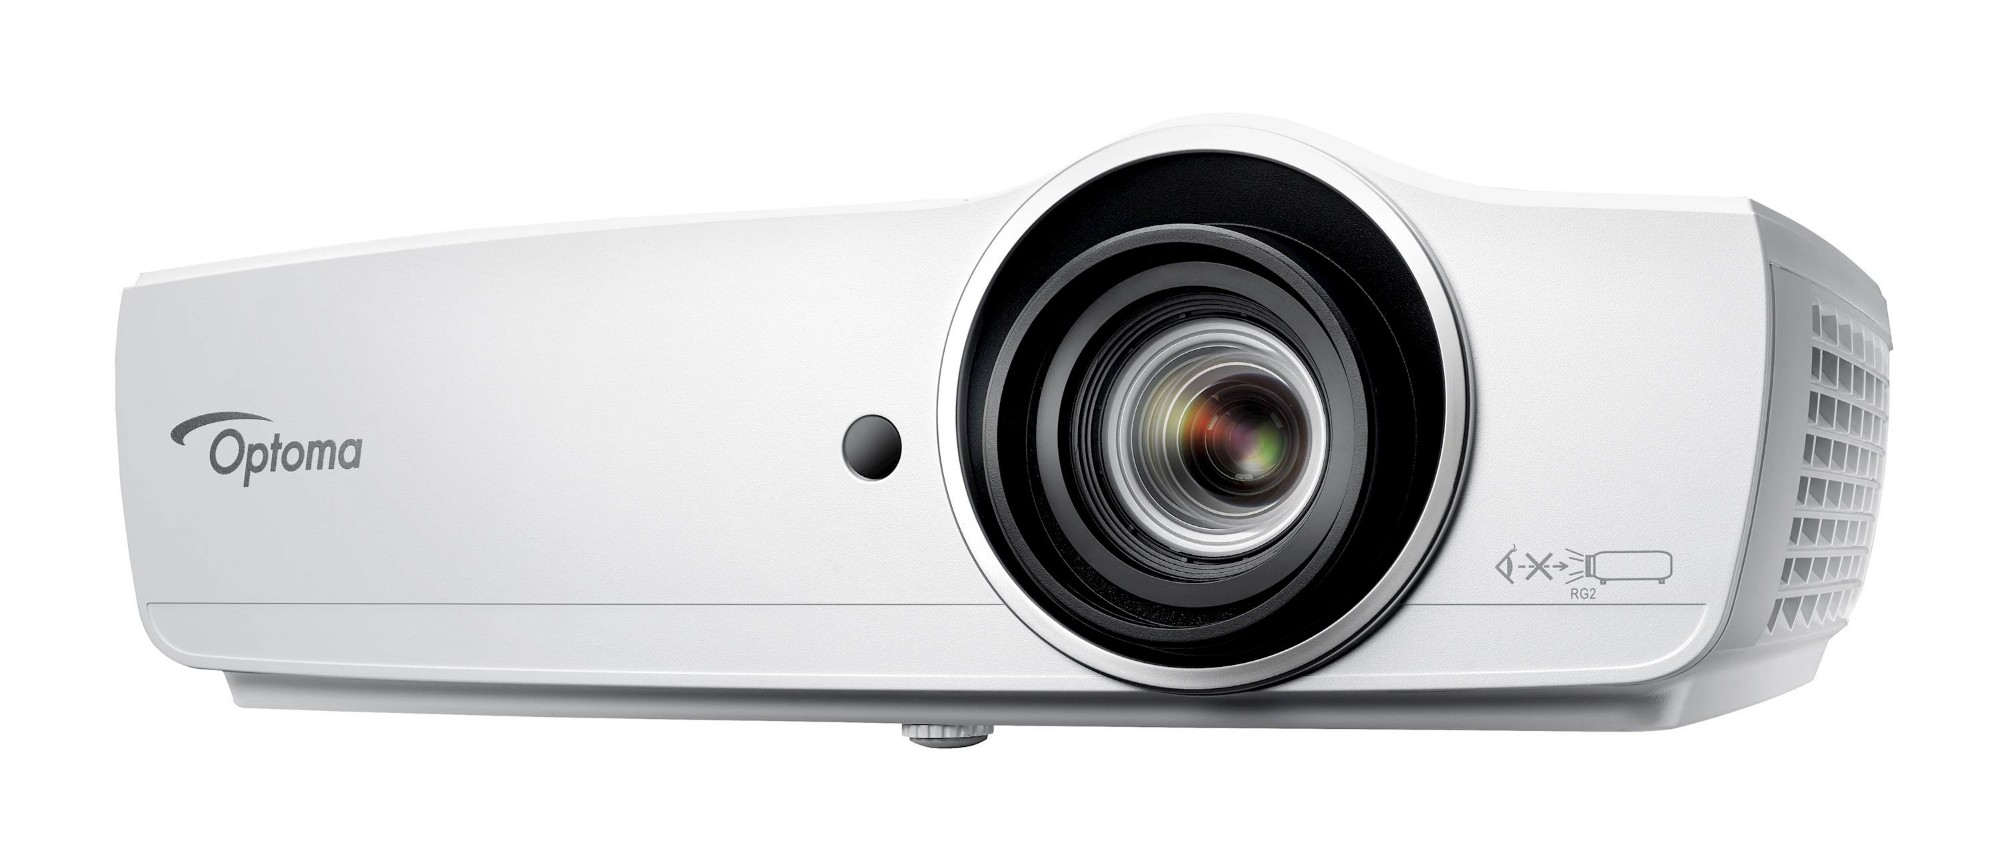 Optoma EH470 beamer/projector 5000 ANSI lumens DLP 1080p (1920x1080) 3D Desktopprojector Wit